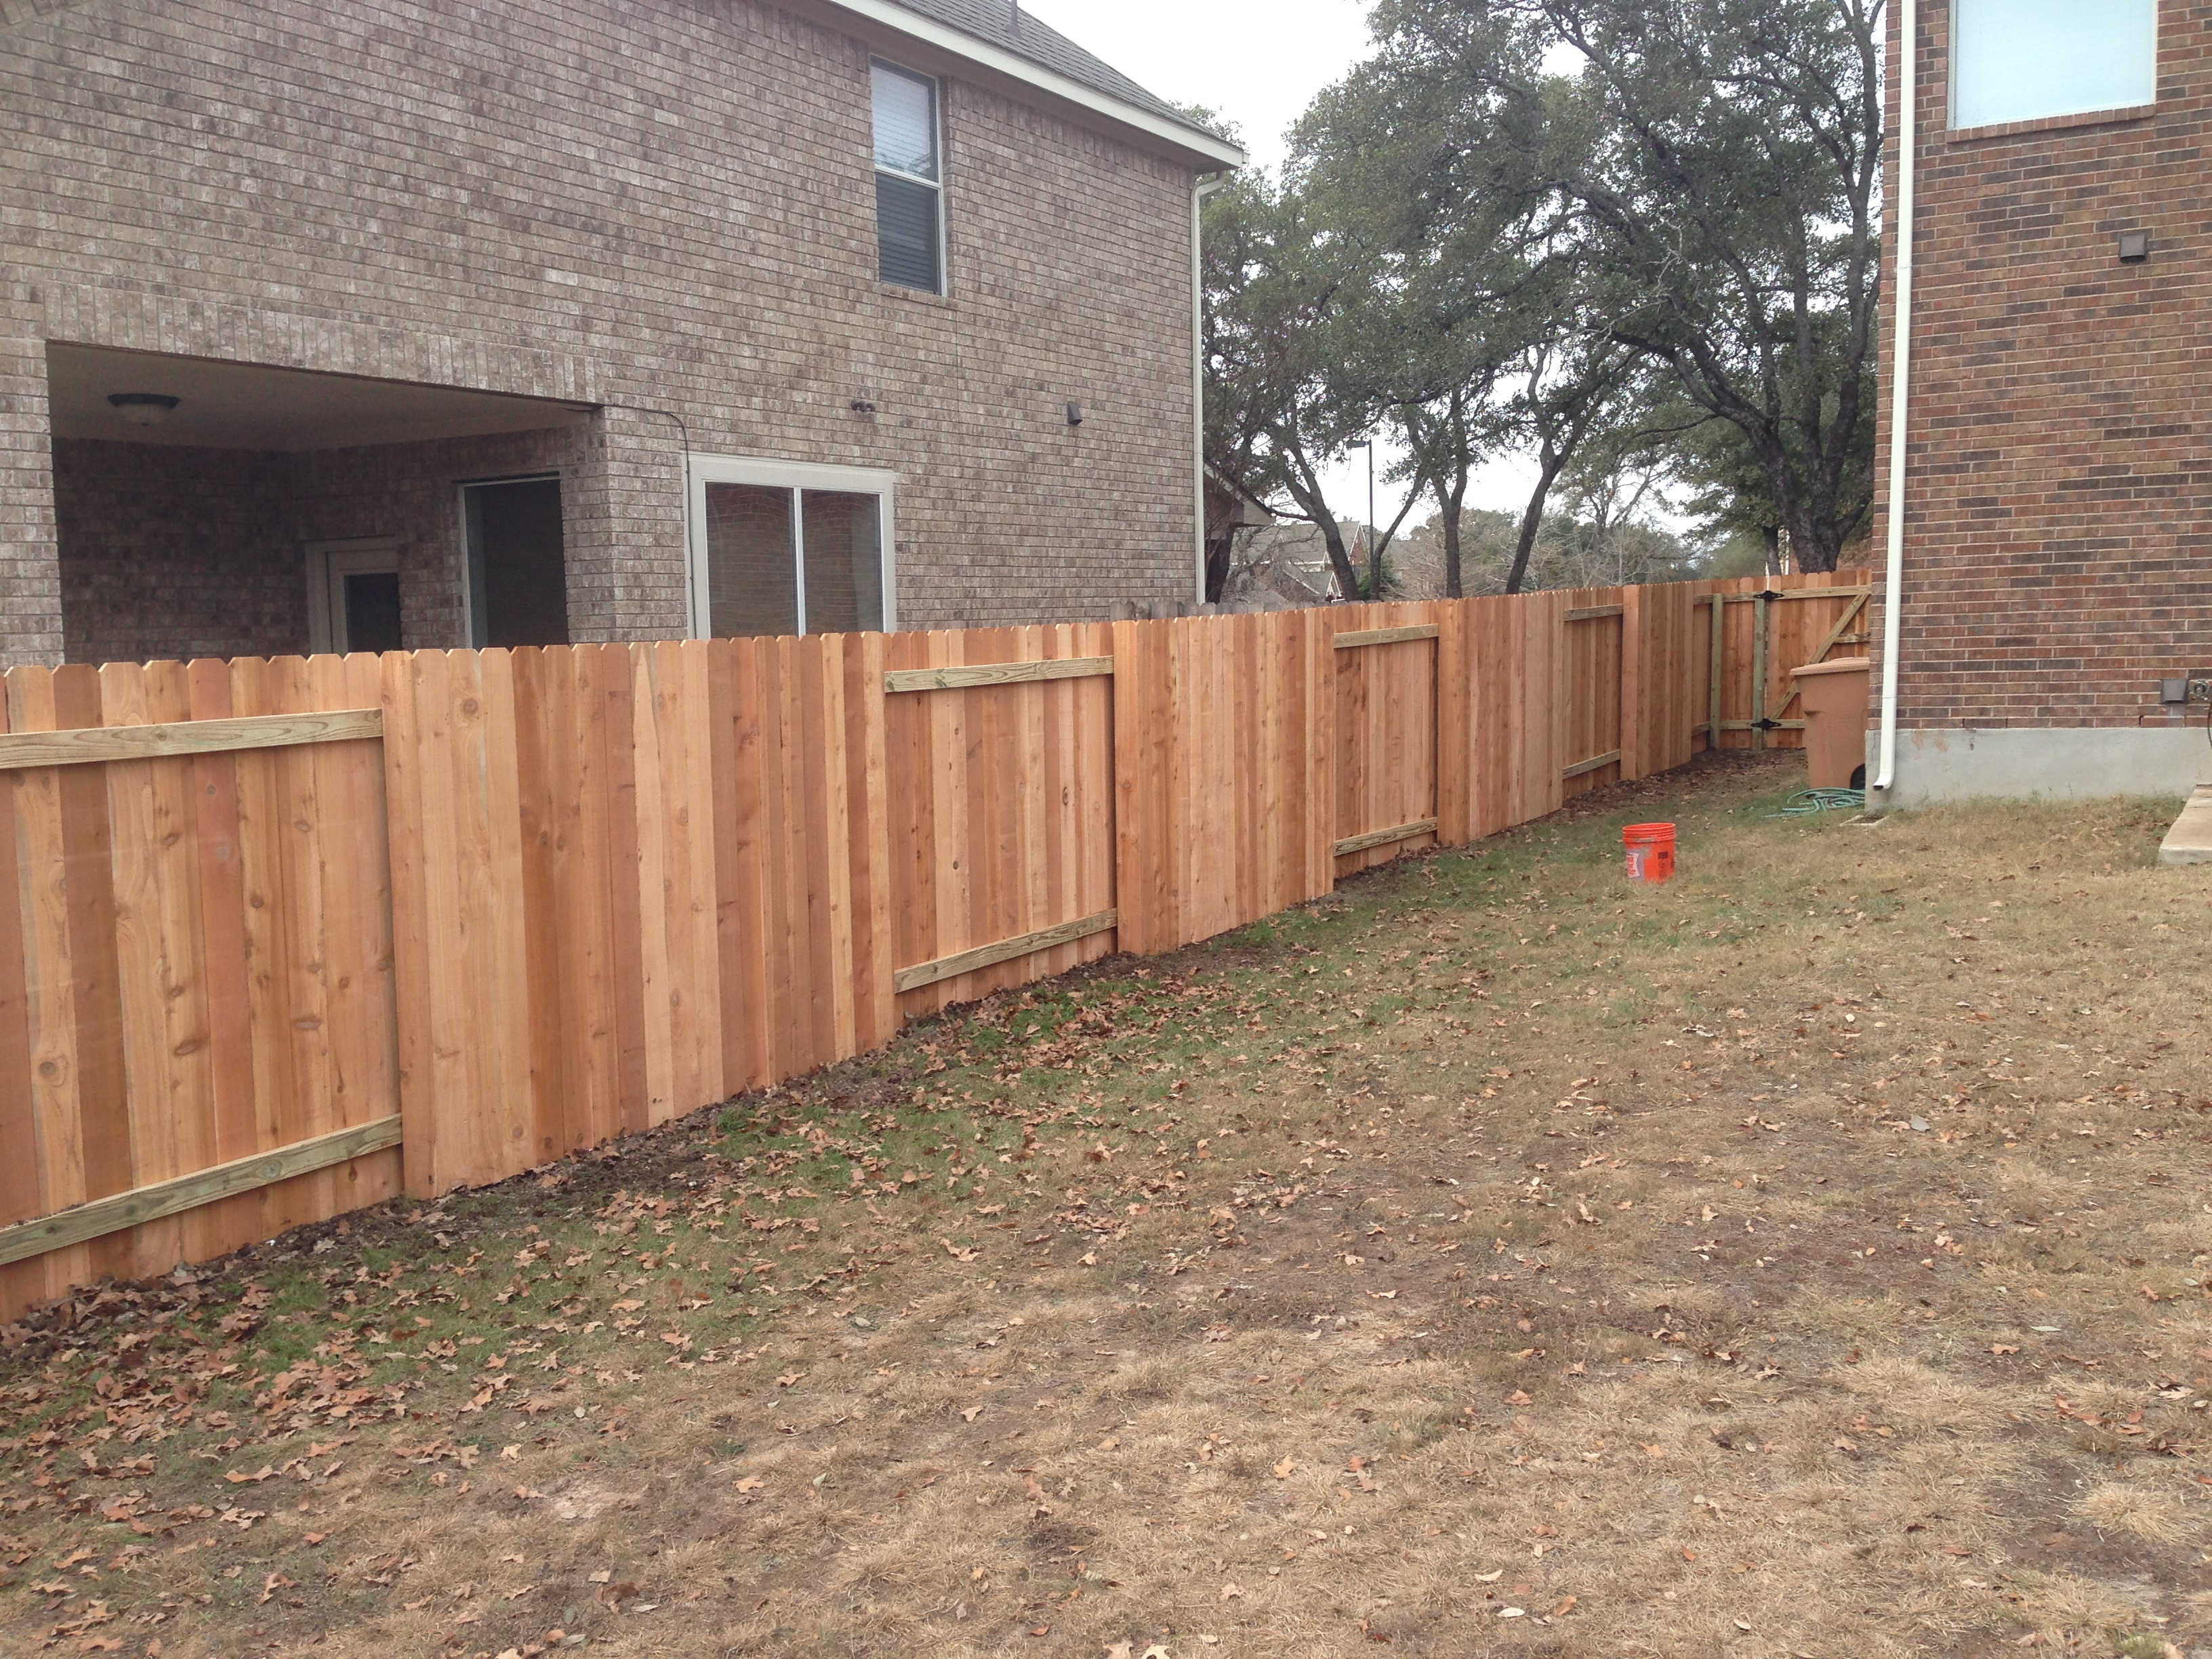 Diy fence project flash fence of college station for Good neighbor fence